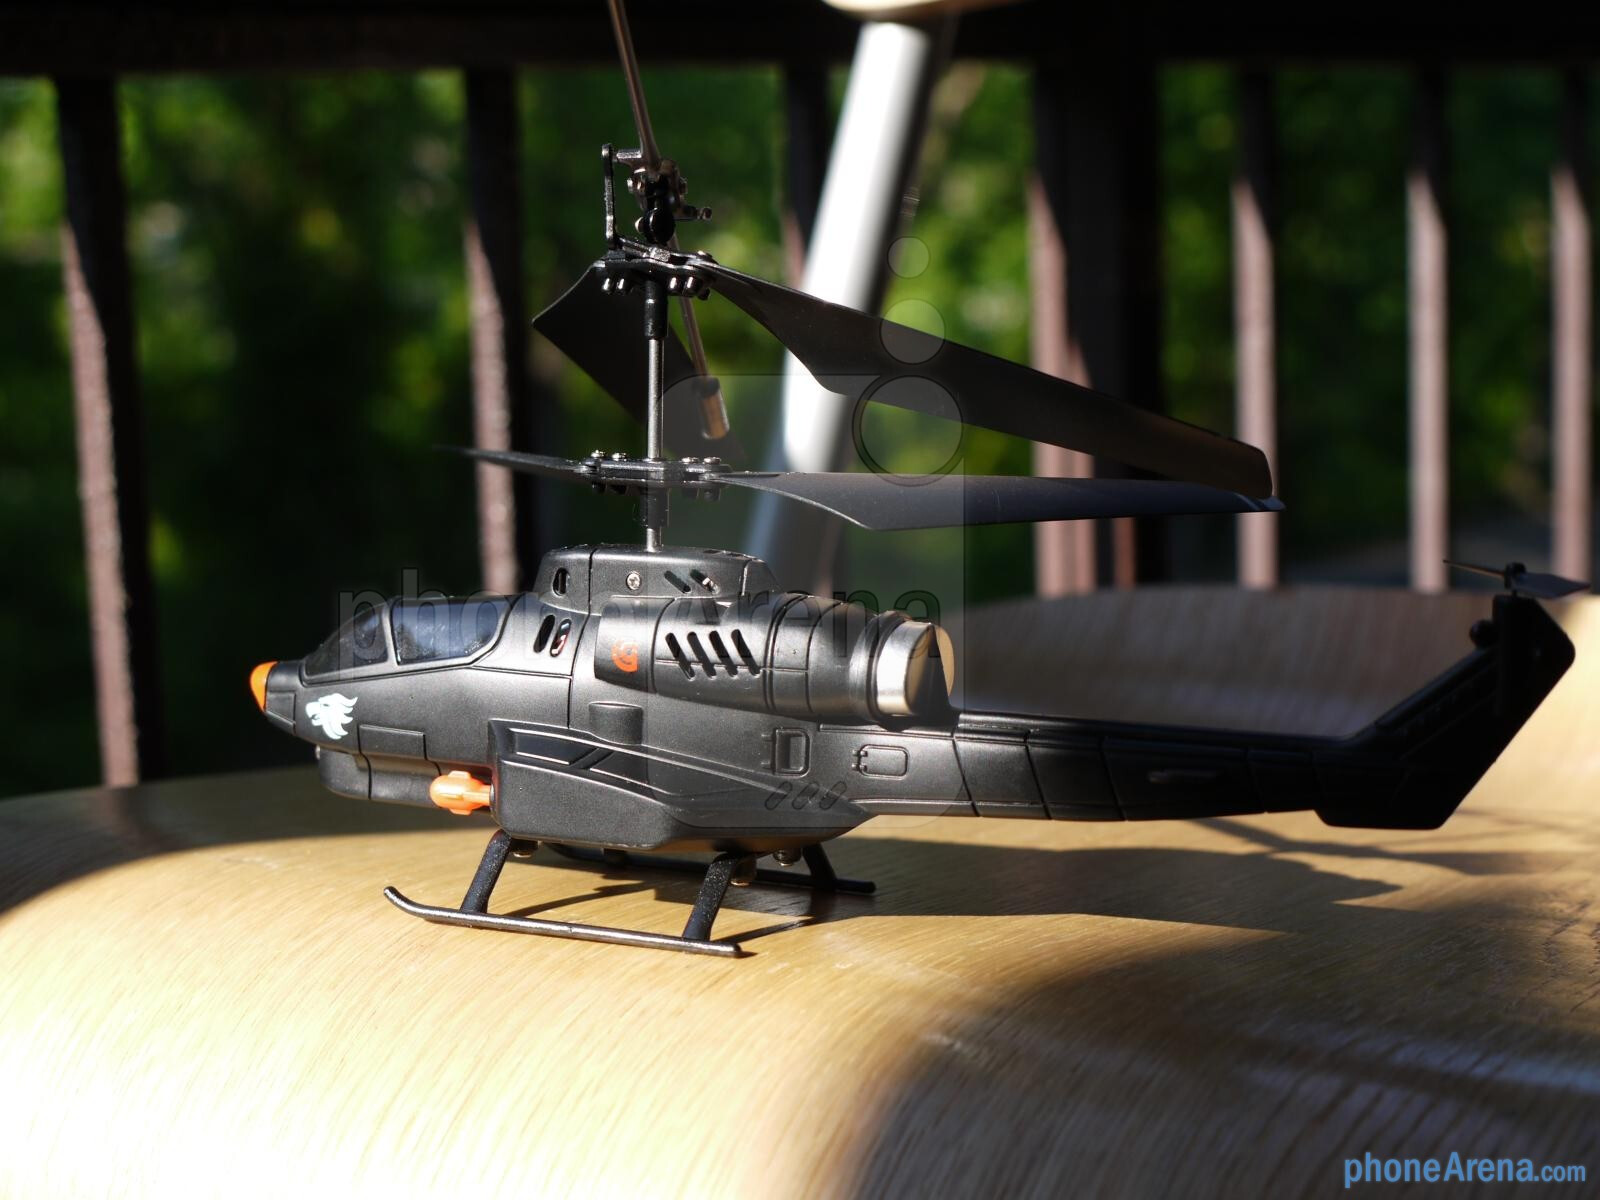 griffin helo tc app controlled helicopter with Griffin Helo Tc Assualt Hands On Id30347 on Griffin Helo Tc Touch Controlled Helicopter Voor Ios Android Gc30021 also 142270629961 as well New Helo Tc App Controlled Helicopter in addition Griffin HELO TC Assualt Hands On id30347 besides 10871039.